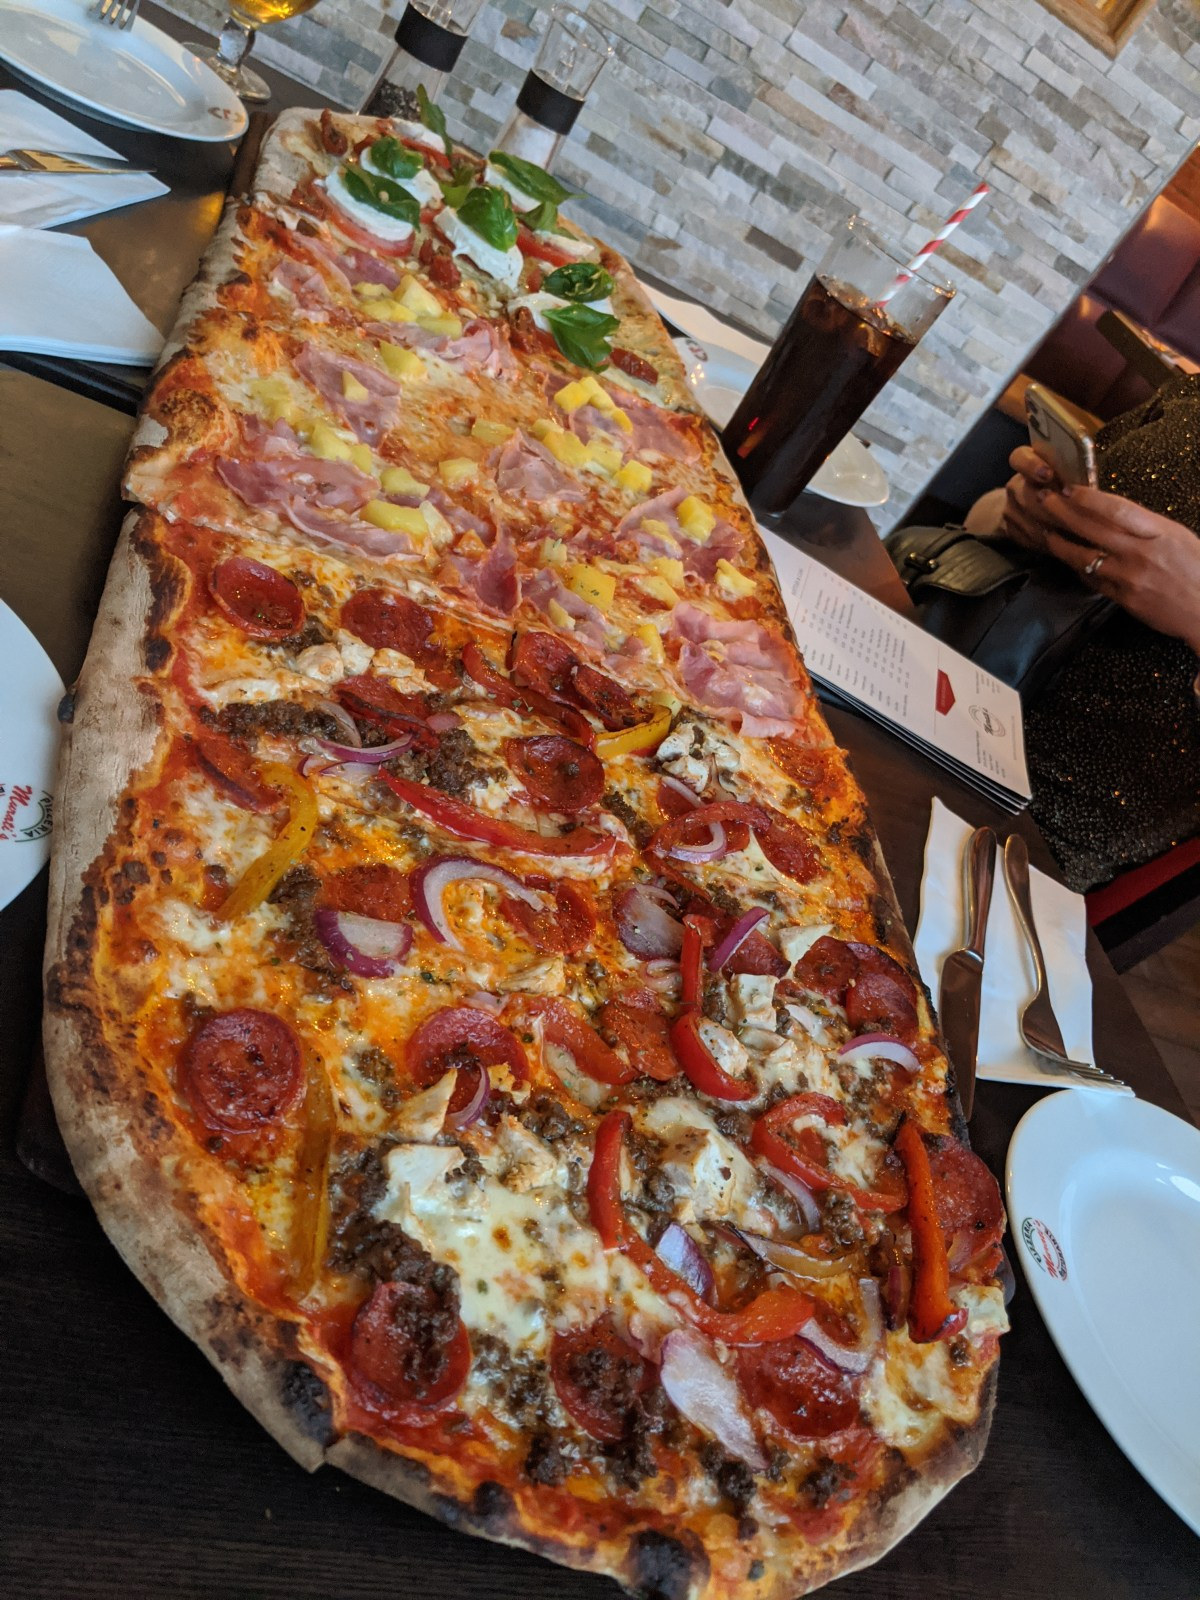 1 Metre of pizza - Murtati's pizza